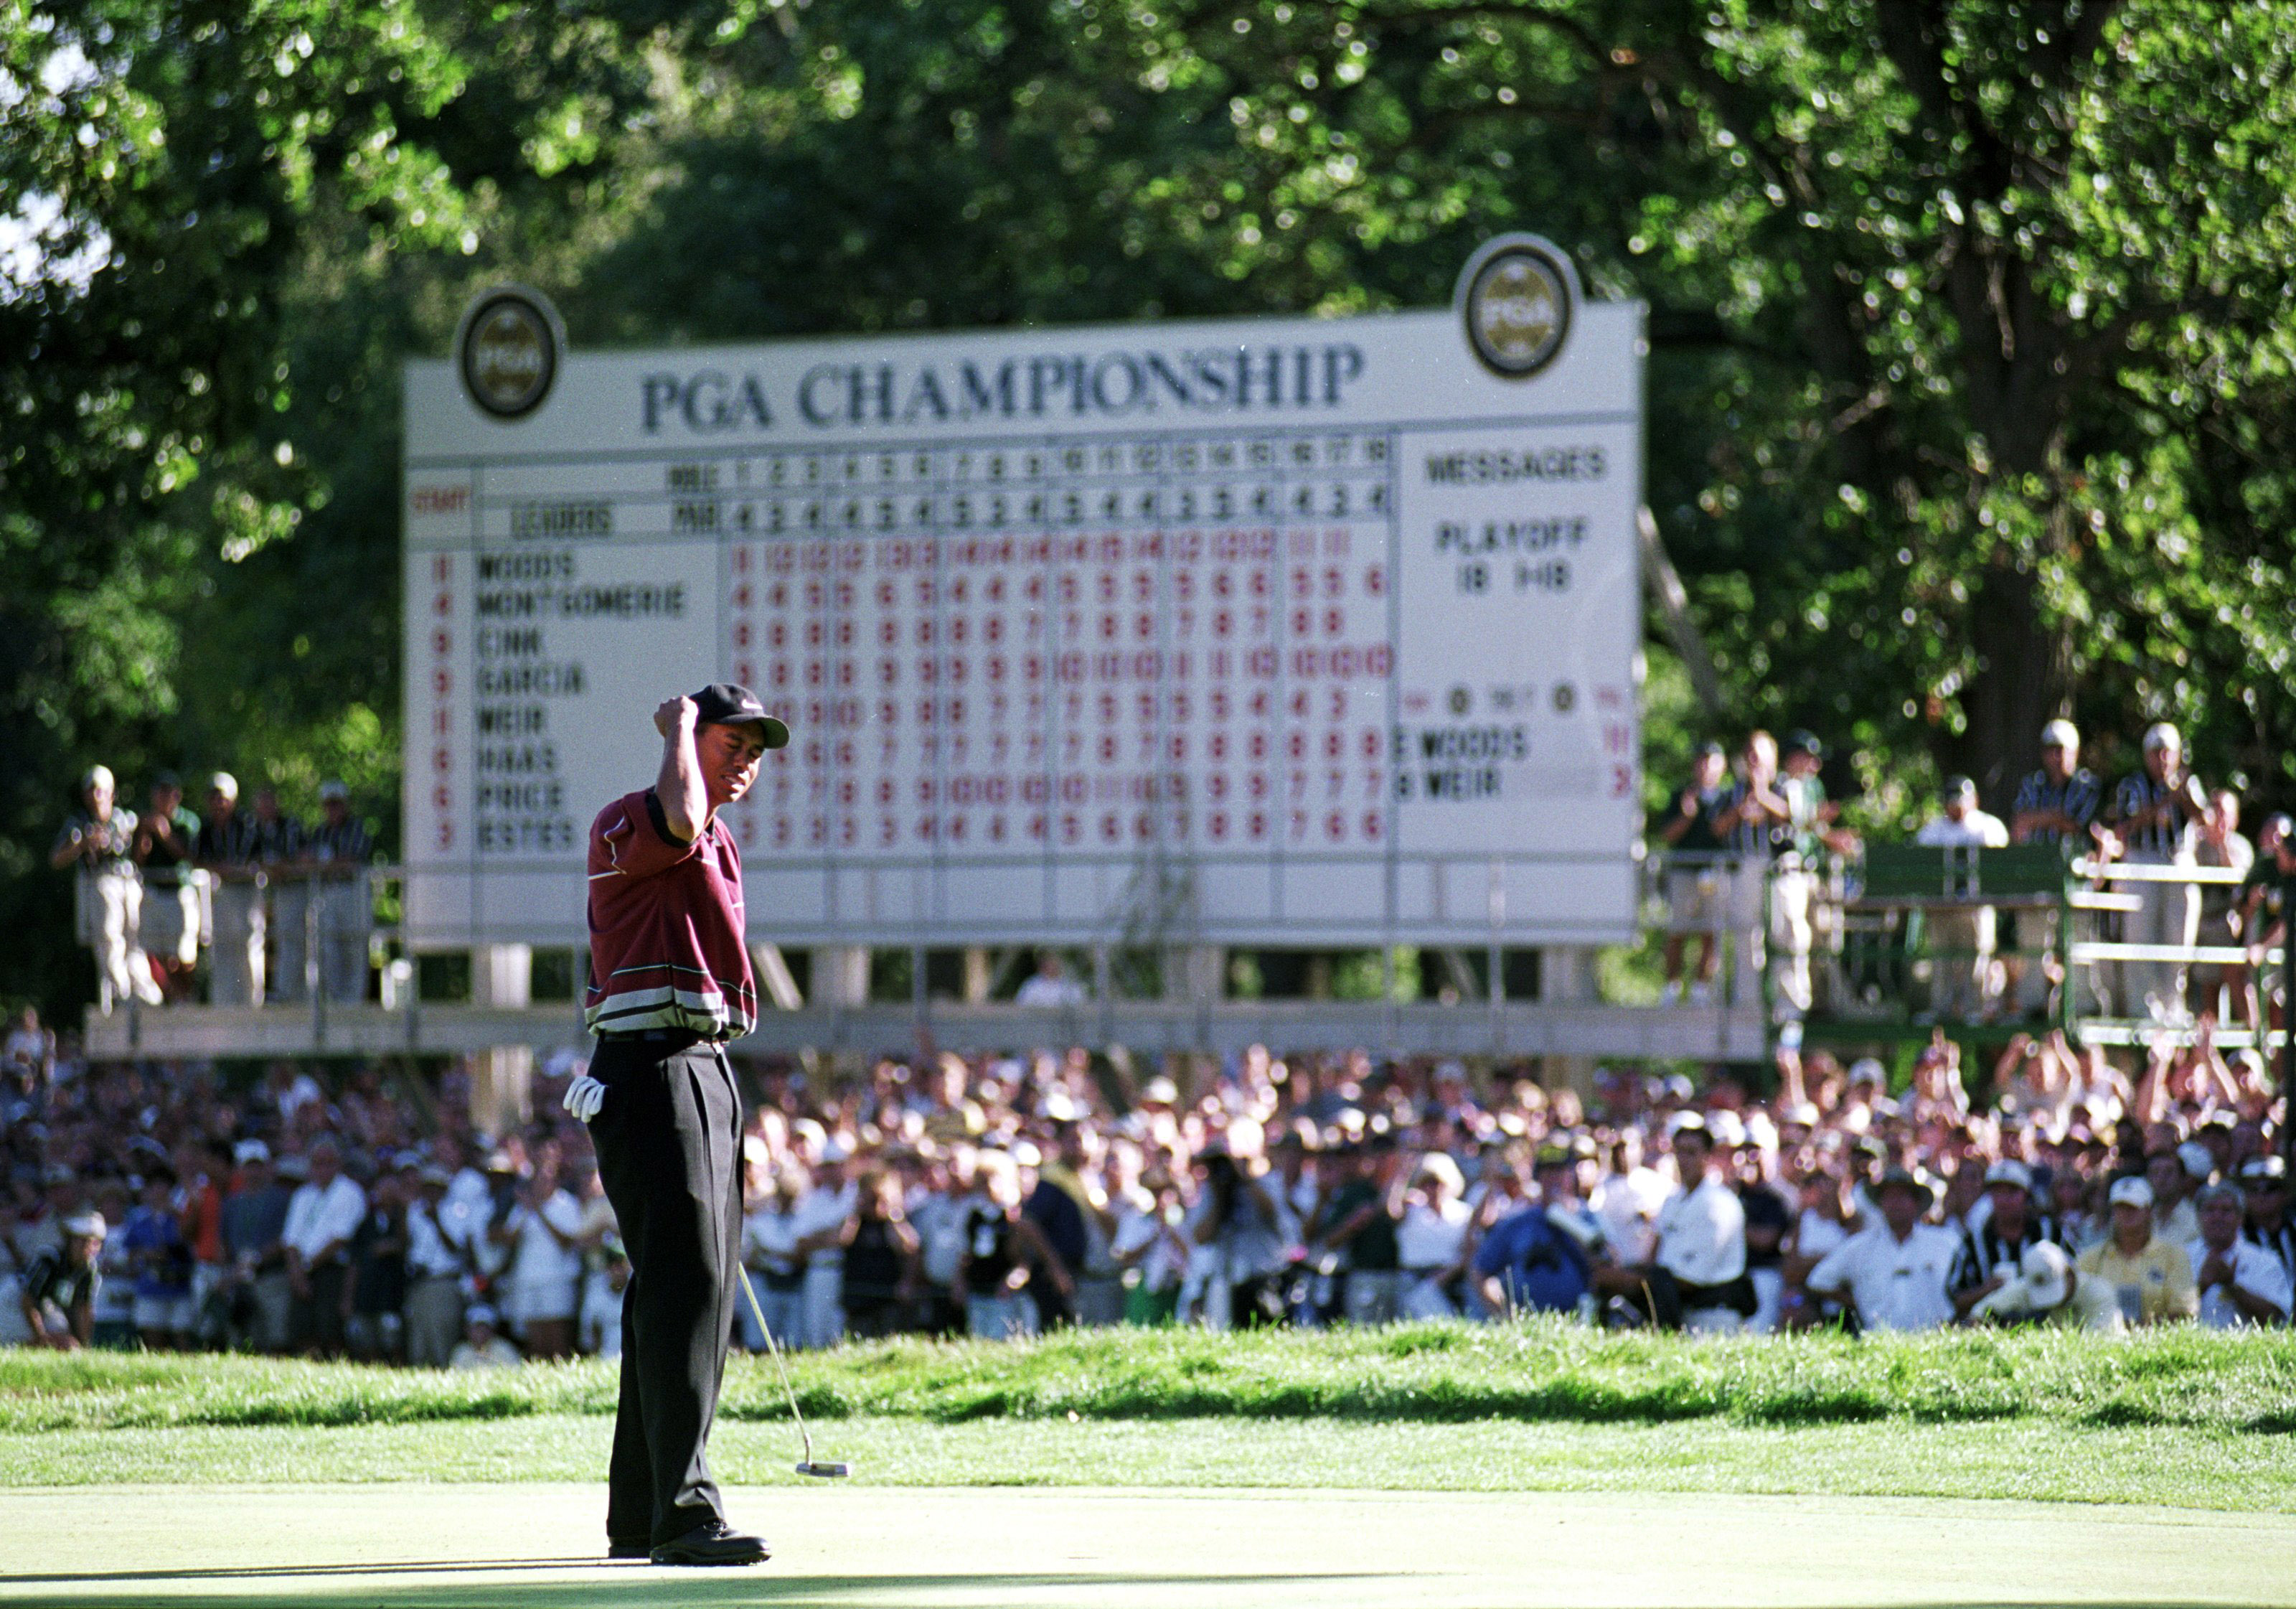 15 Aug 1999: Tiger Woods celebrates as he makes the winning putt during the PGA Championships at the Medinah Country Club in Medinah, Illinois. Mandatory Credit: Harry How /Allsport